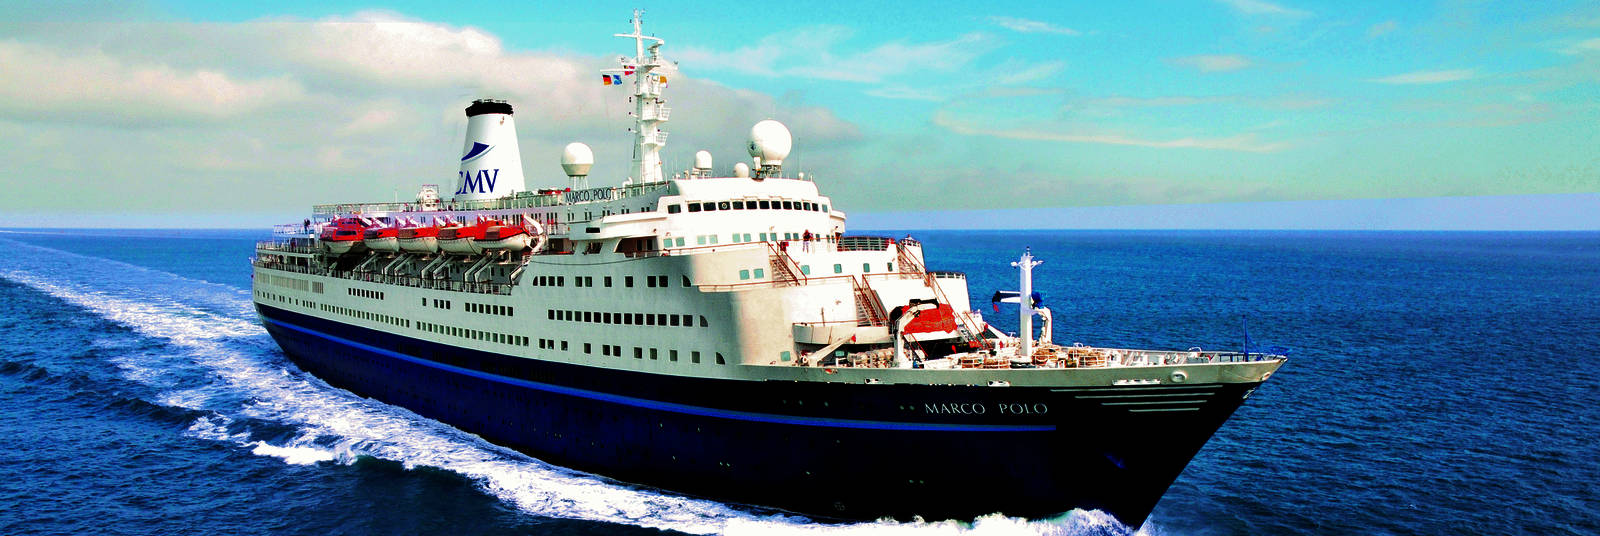 Homepage_large_marco_polo_front_exterior